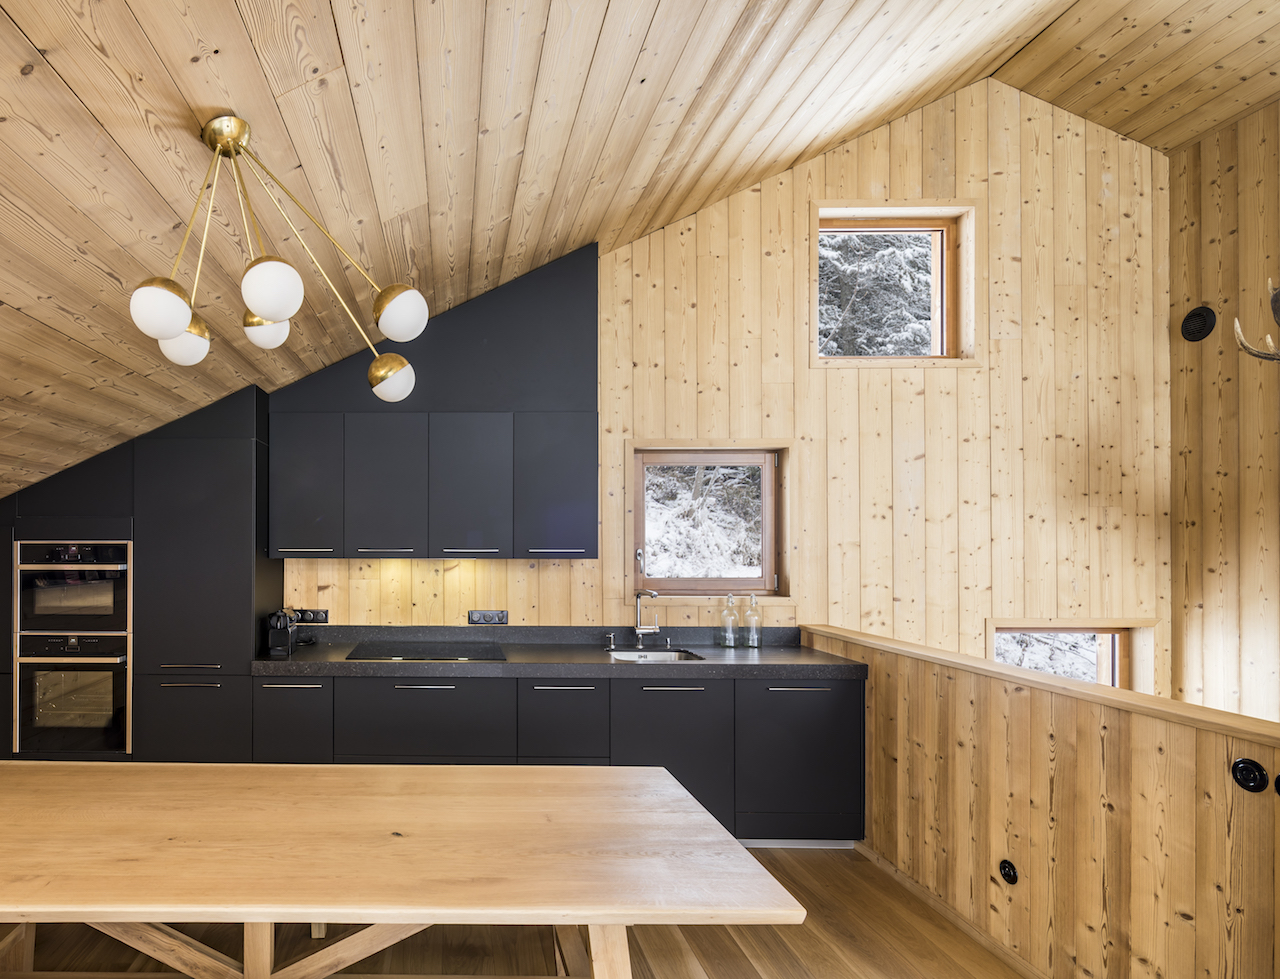 The made-to-measure kitchen, designed by the iconic French brand Schmidt, fits under the eaves.